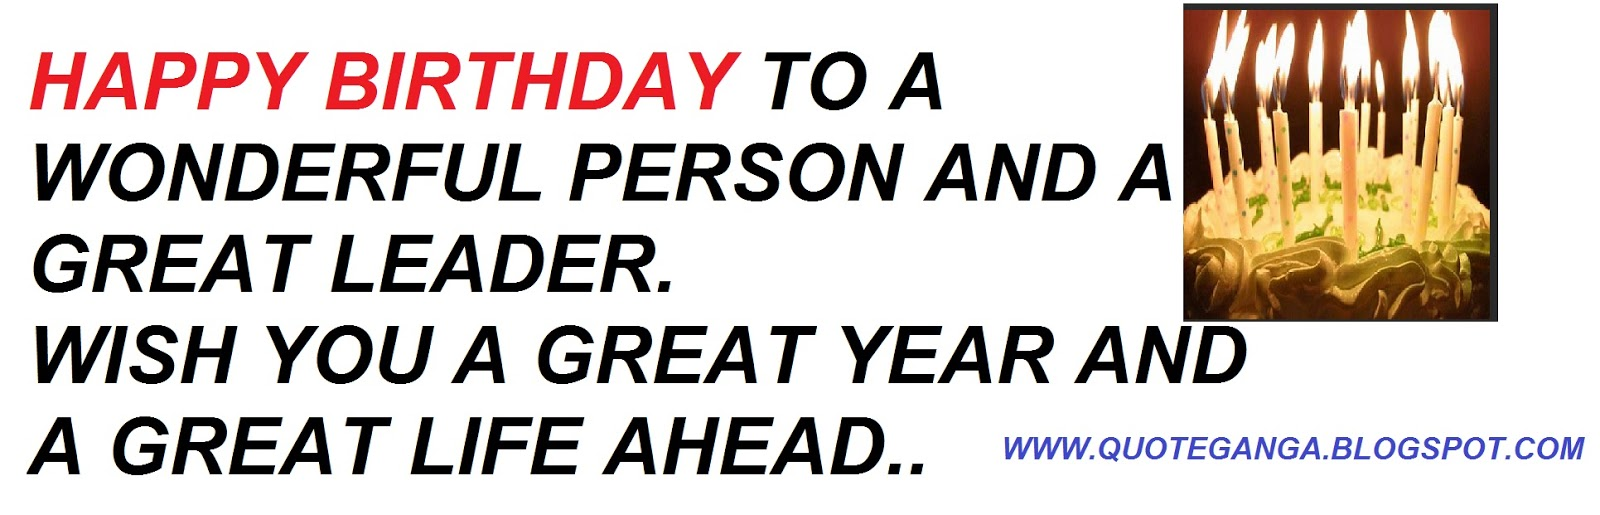 32 Cool Birthday Wishes Quotes Greetings Quoteganga